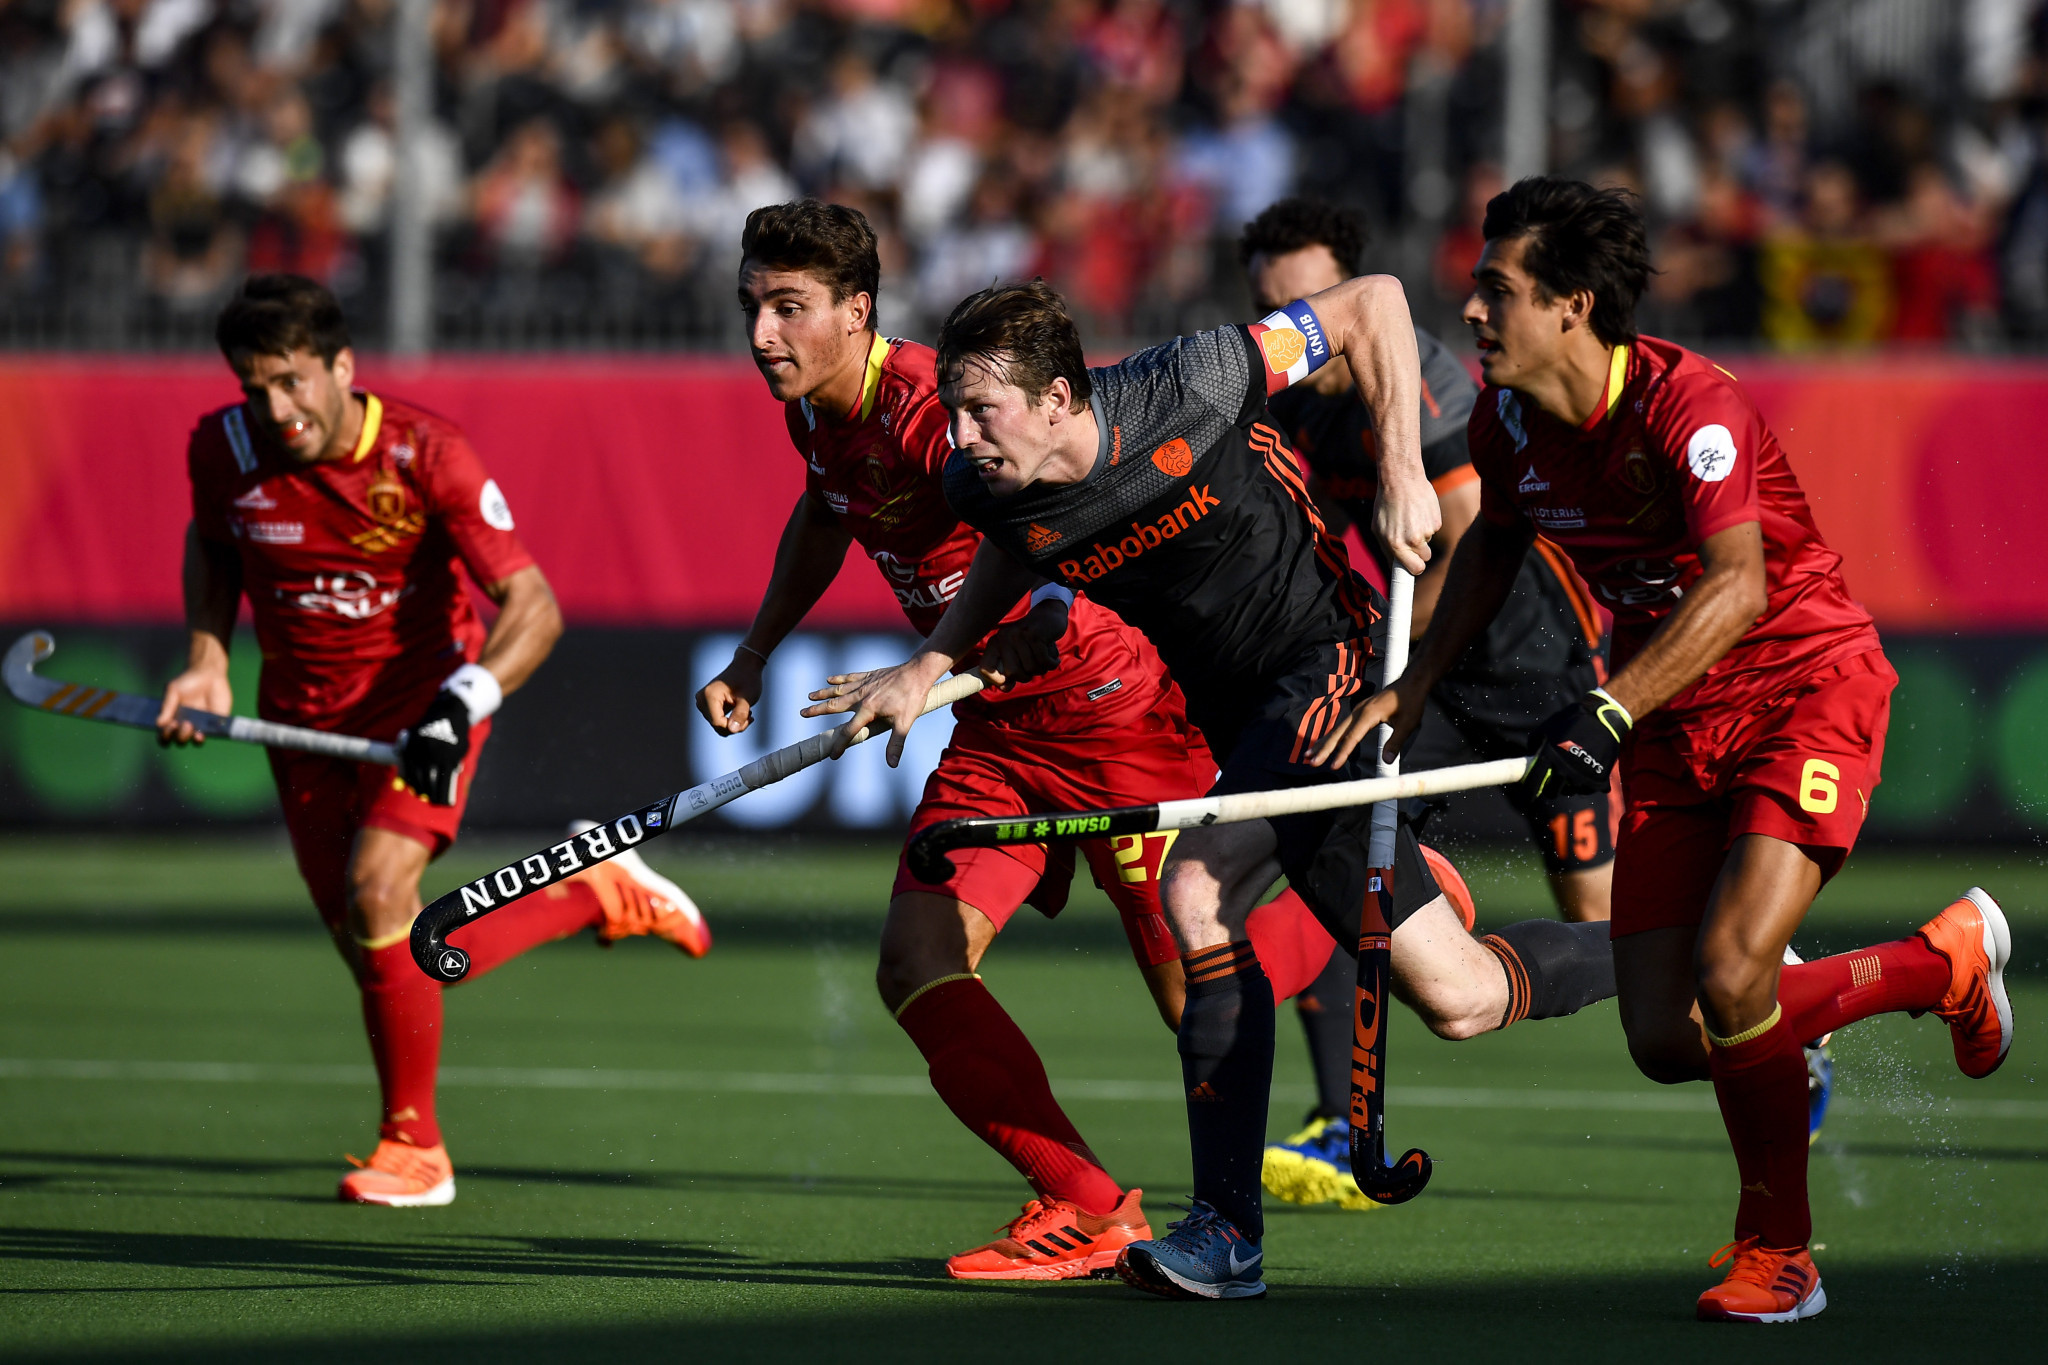 Spain stun The Netherlands to reach first EuroHockey Nations Championship final since 2007